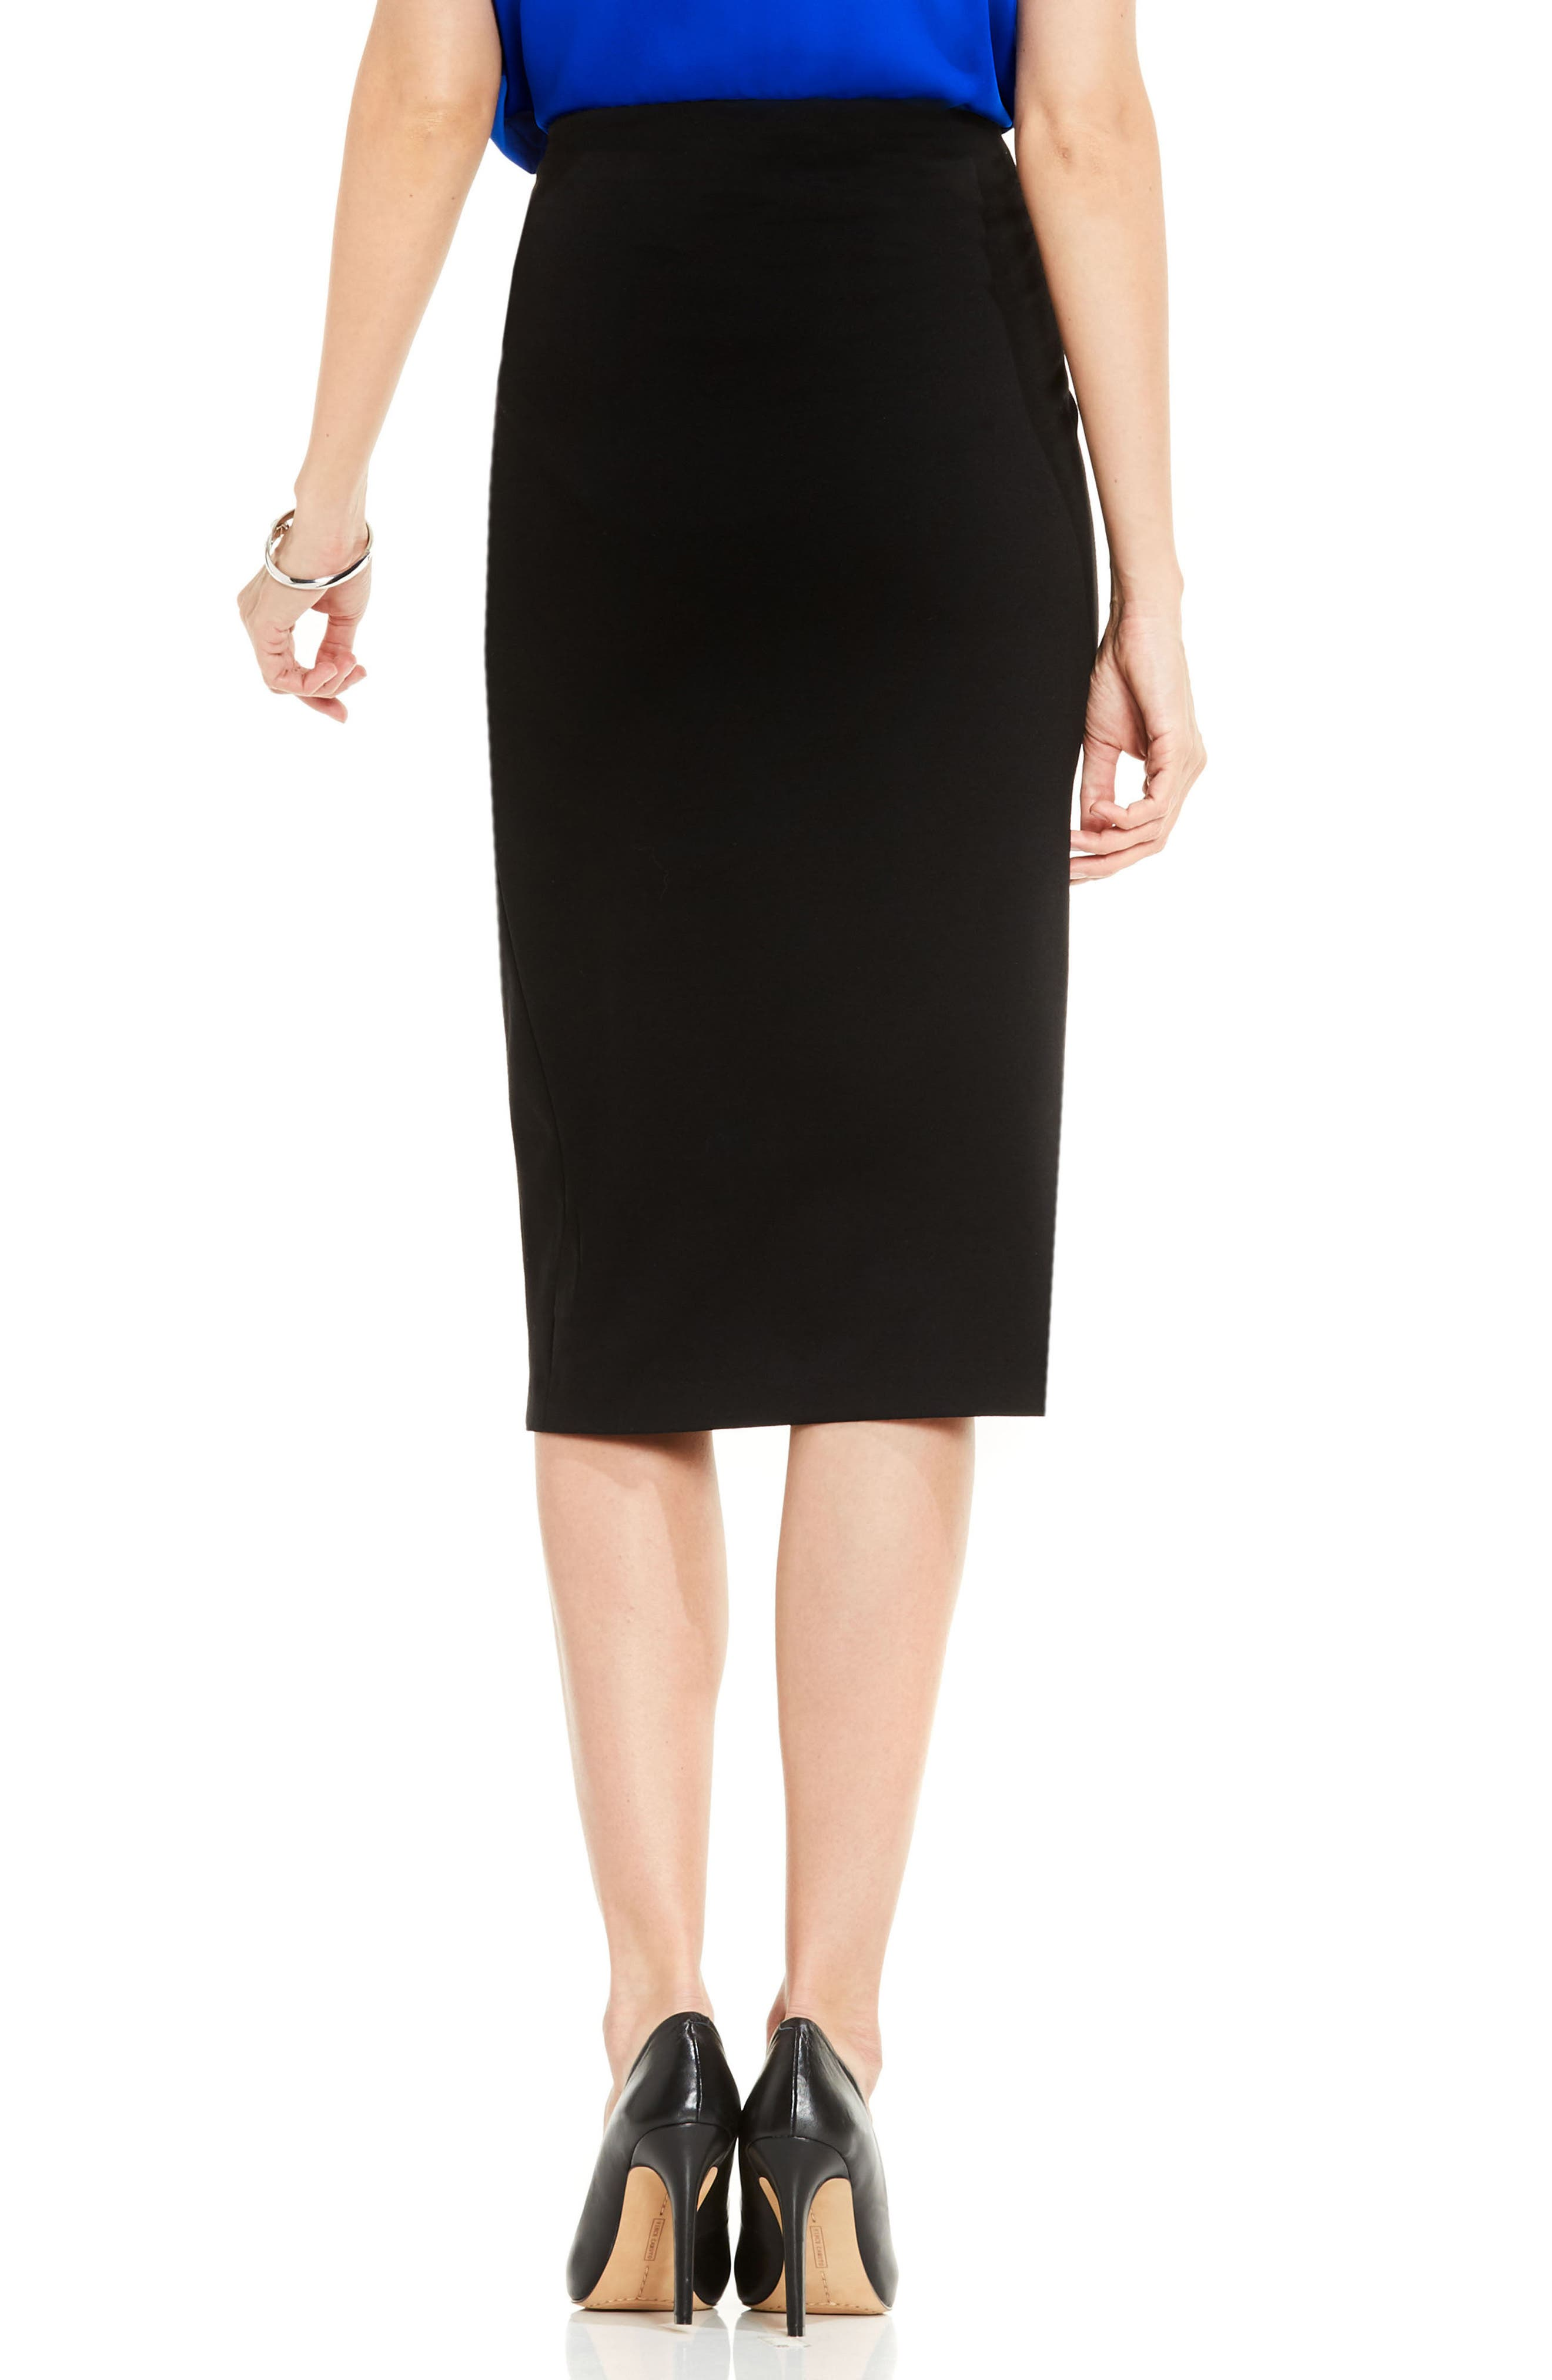 VINCE CAMUTO, Pull-On Pencil Skirt, Alternate thumbnail 2, color, RICH BLACK